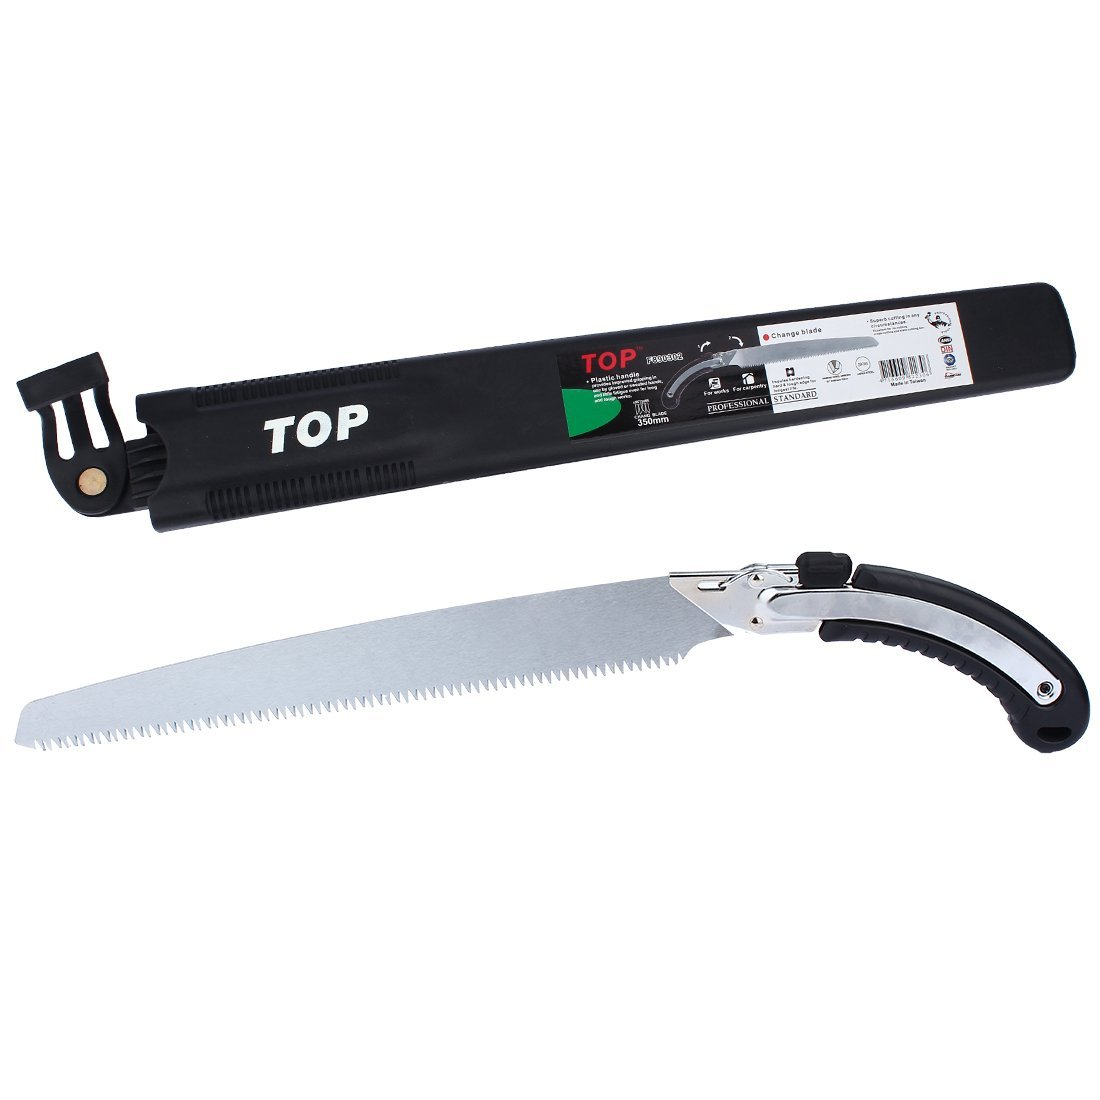 Heavy Duty Pruning Saw,Comfort Handle with Saw Blade Enclosure - Japanese Style Hand Saw - Perfect for Trimming Trees, Plants, Shrubs, Wood, and More!